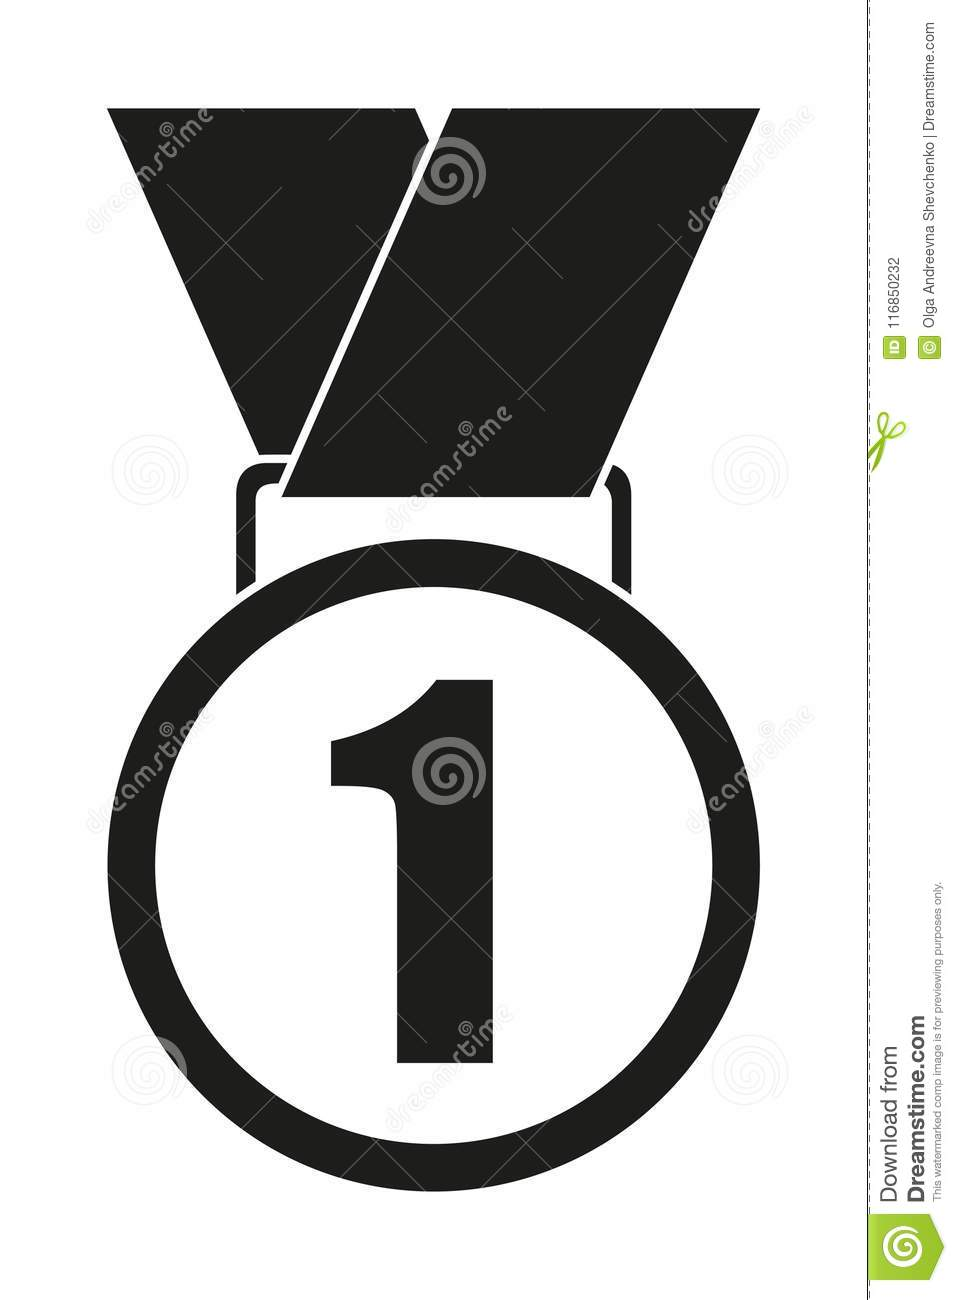 black and white first place medal silhouette stock vector